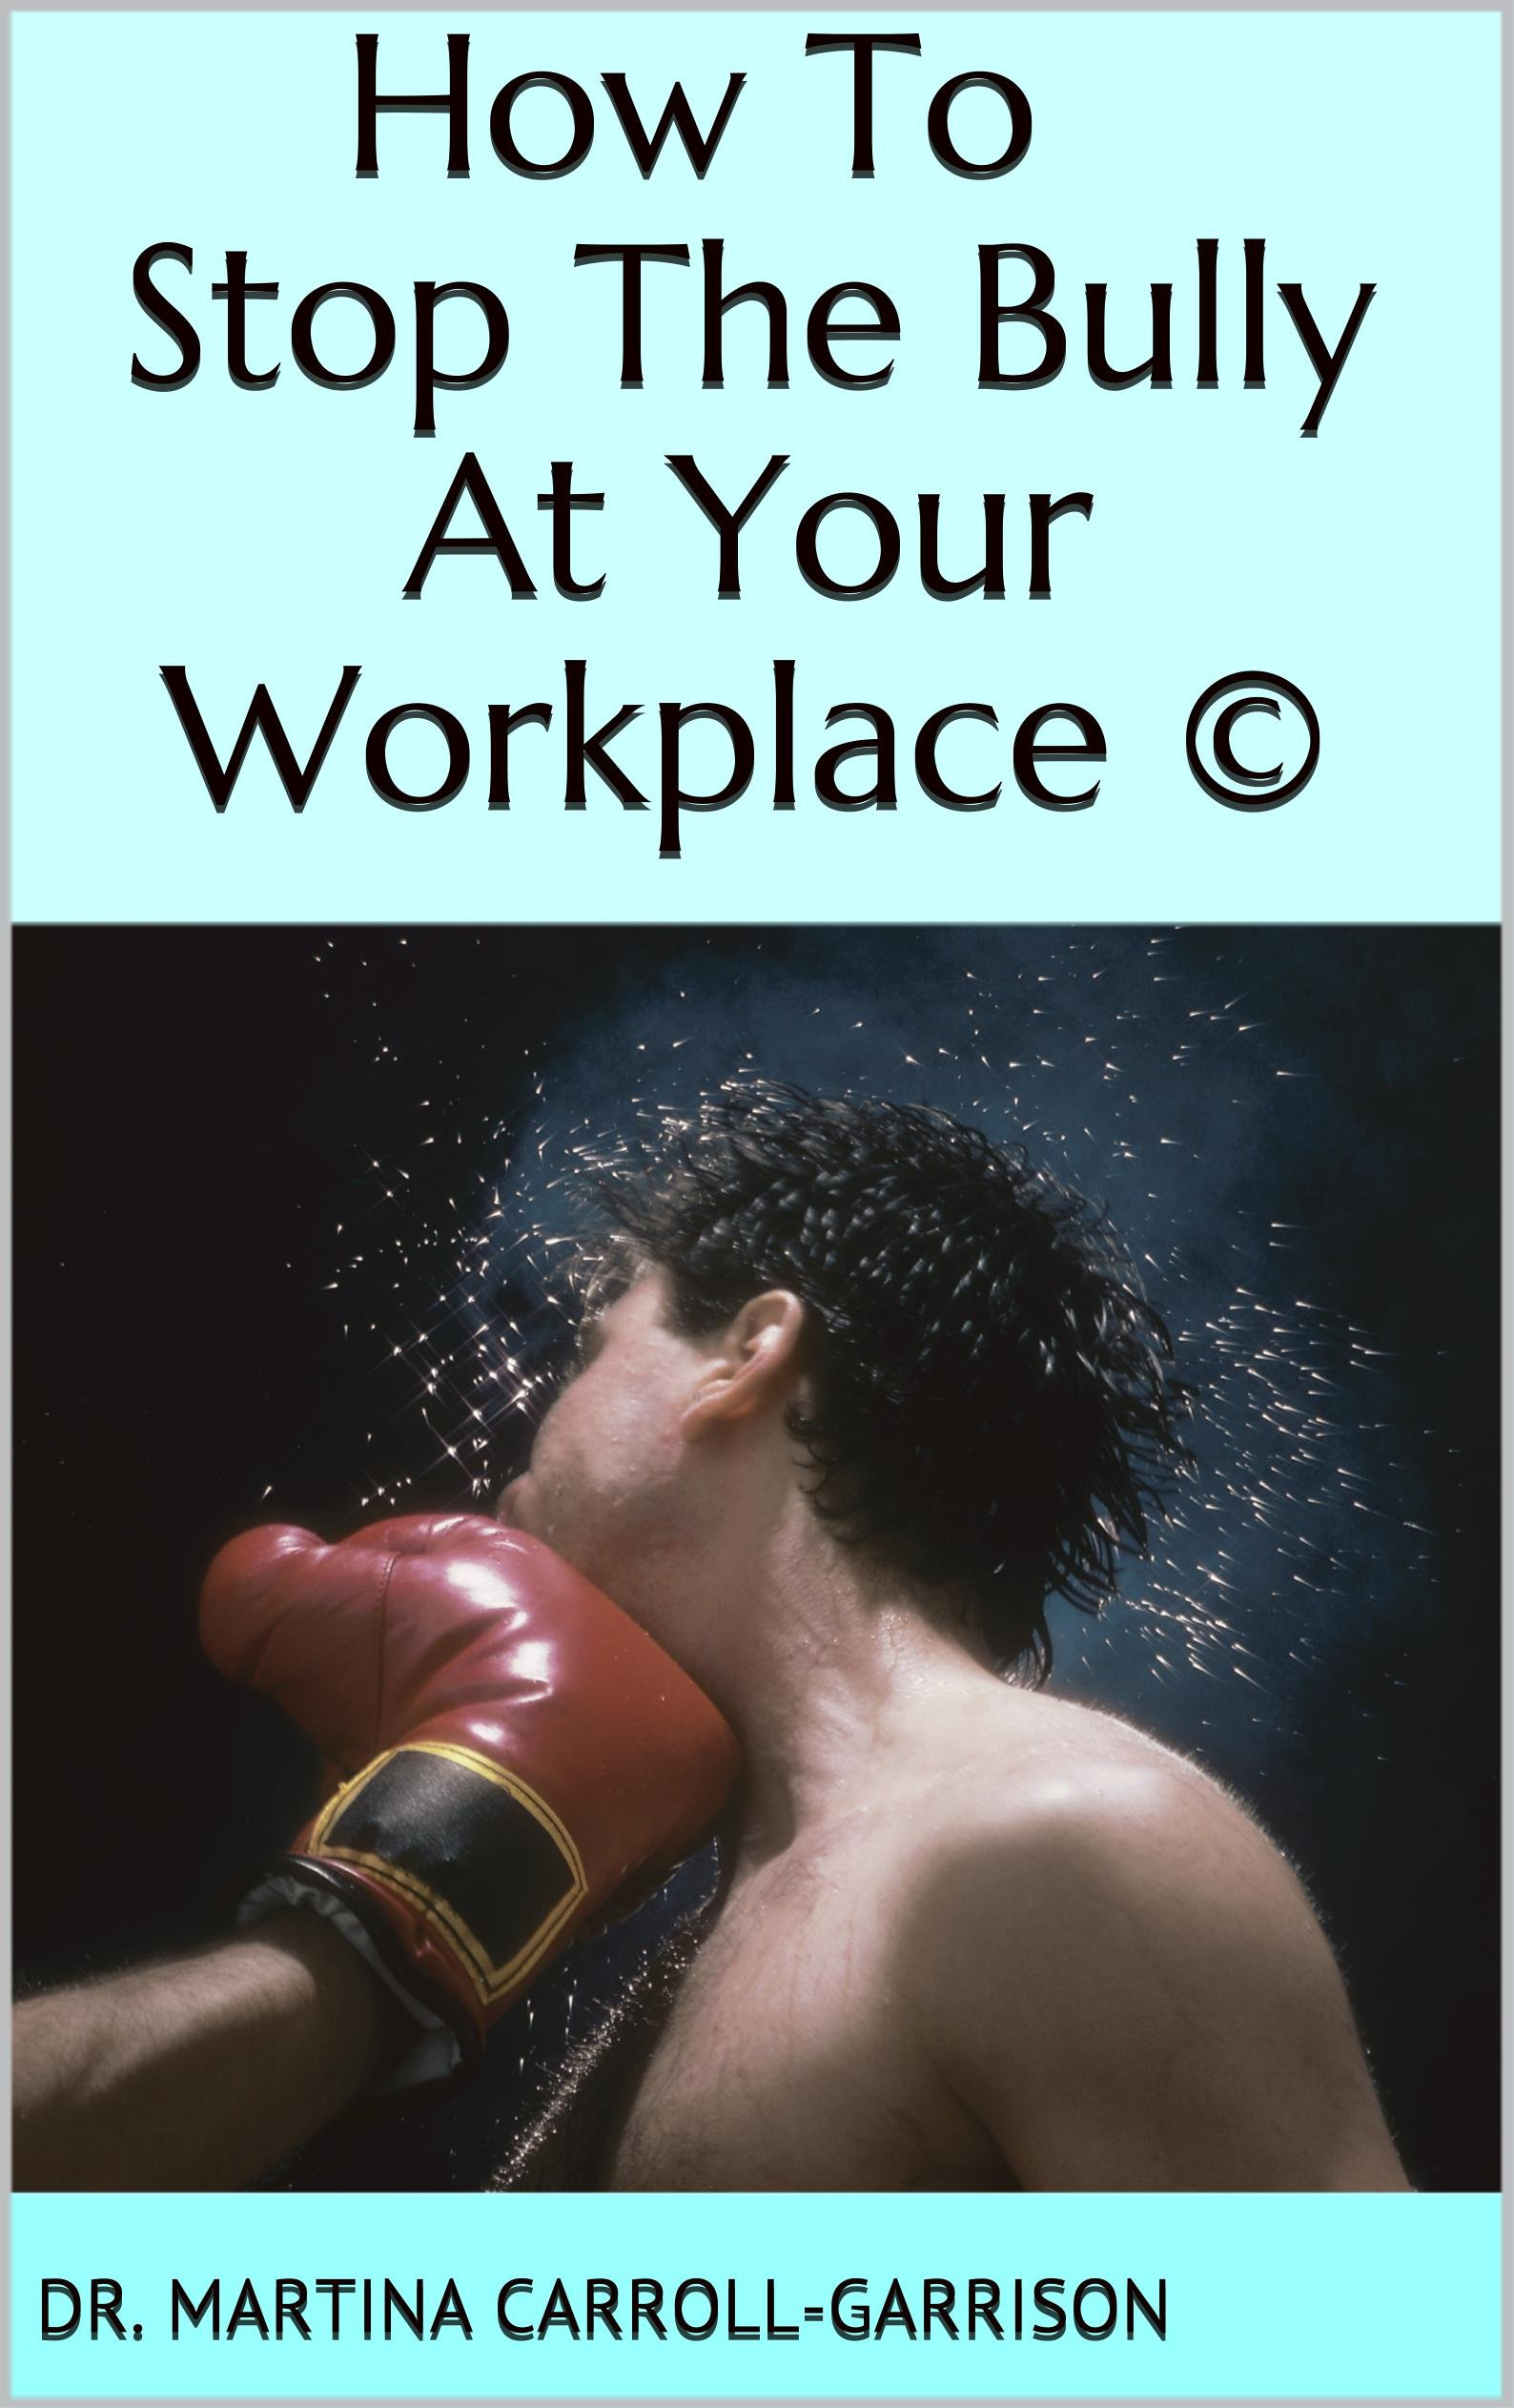 How To Stop The Bully At Your Workplace ©: Your Bully at Work: What To Do to Stop The Bully And Return to Workplace Joy (Workplace Behavior)